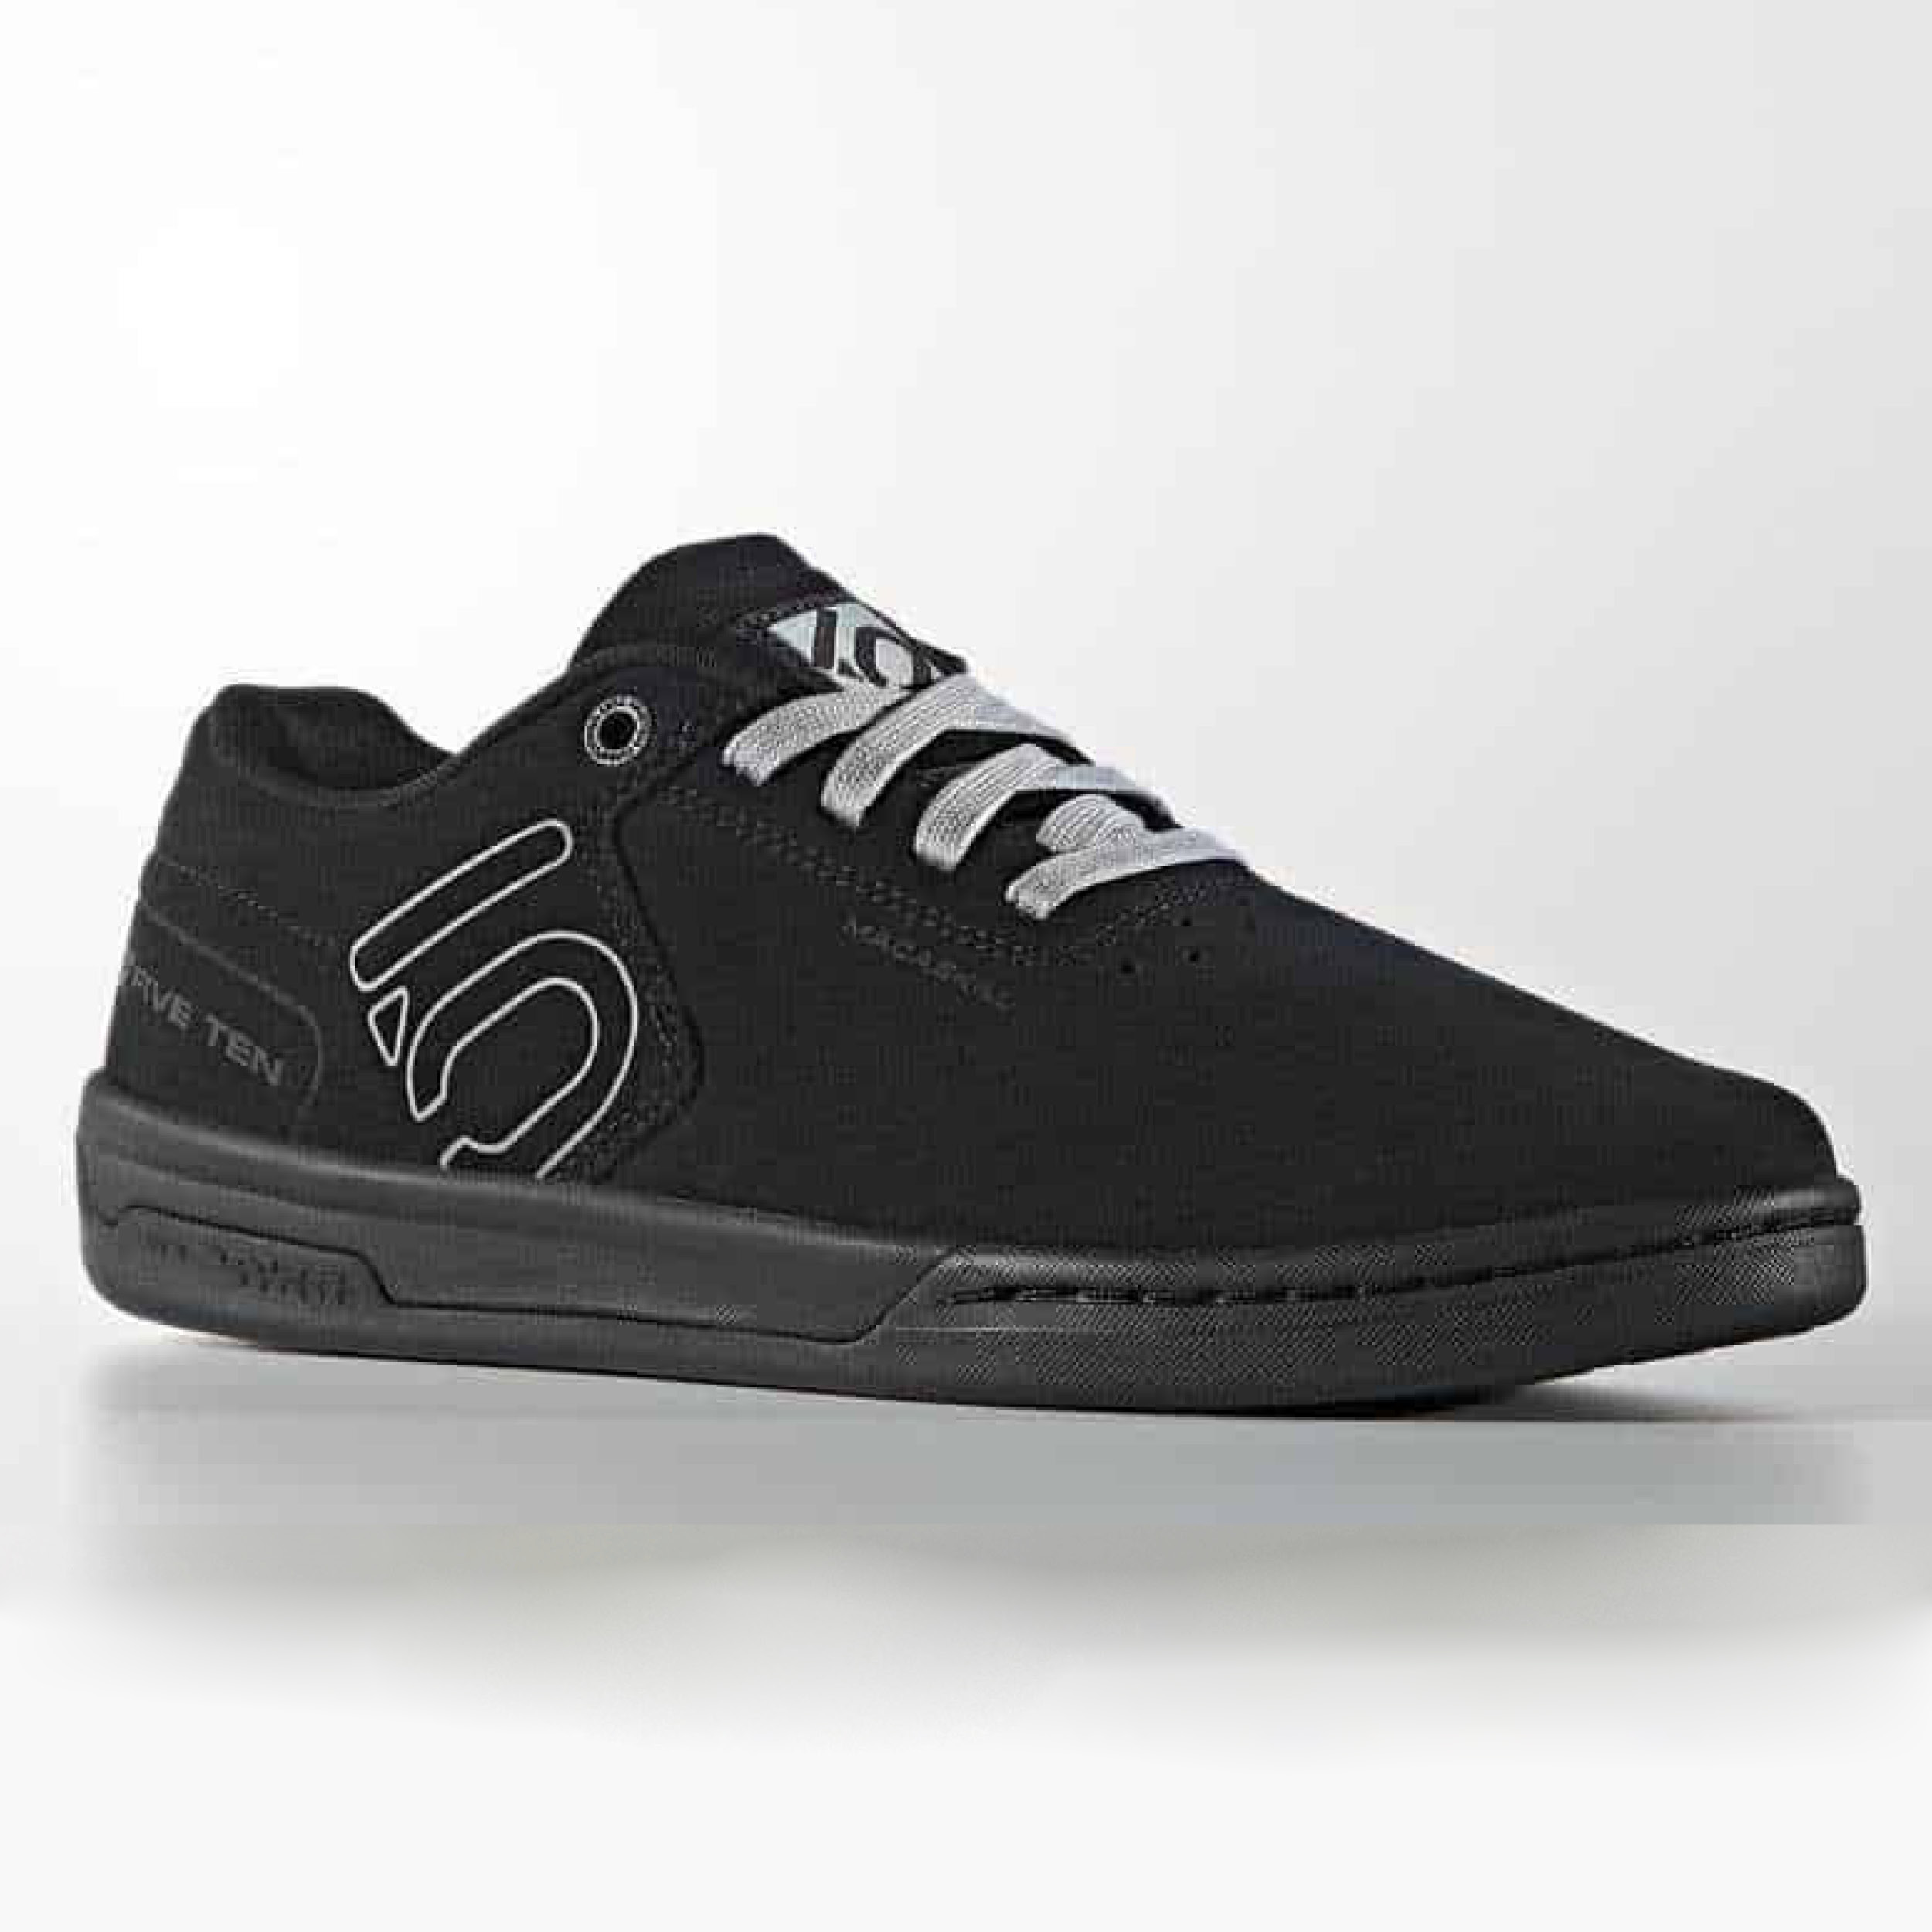 9e7ce8bec467 Five Ten Danny Macaskill MTB Shoes Carbon Black £49.99